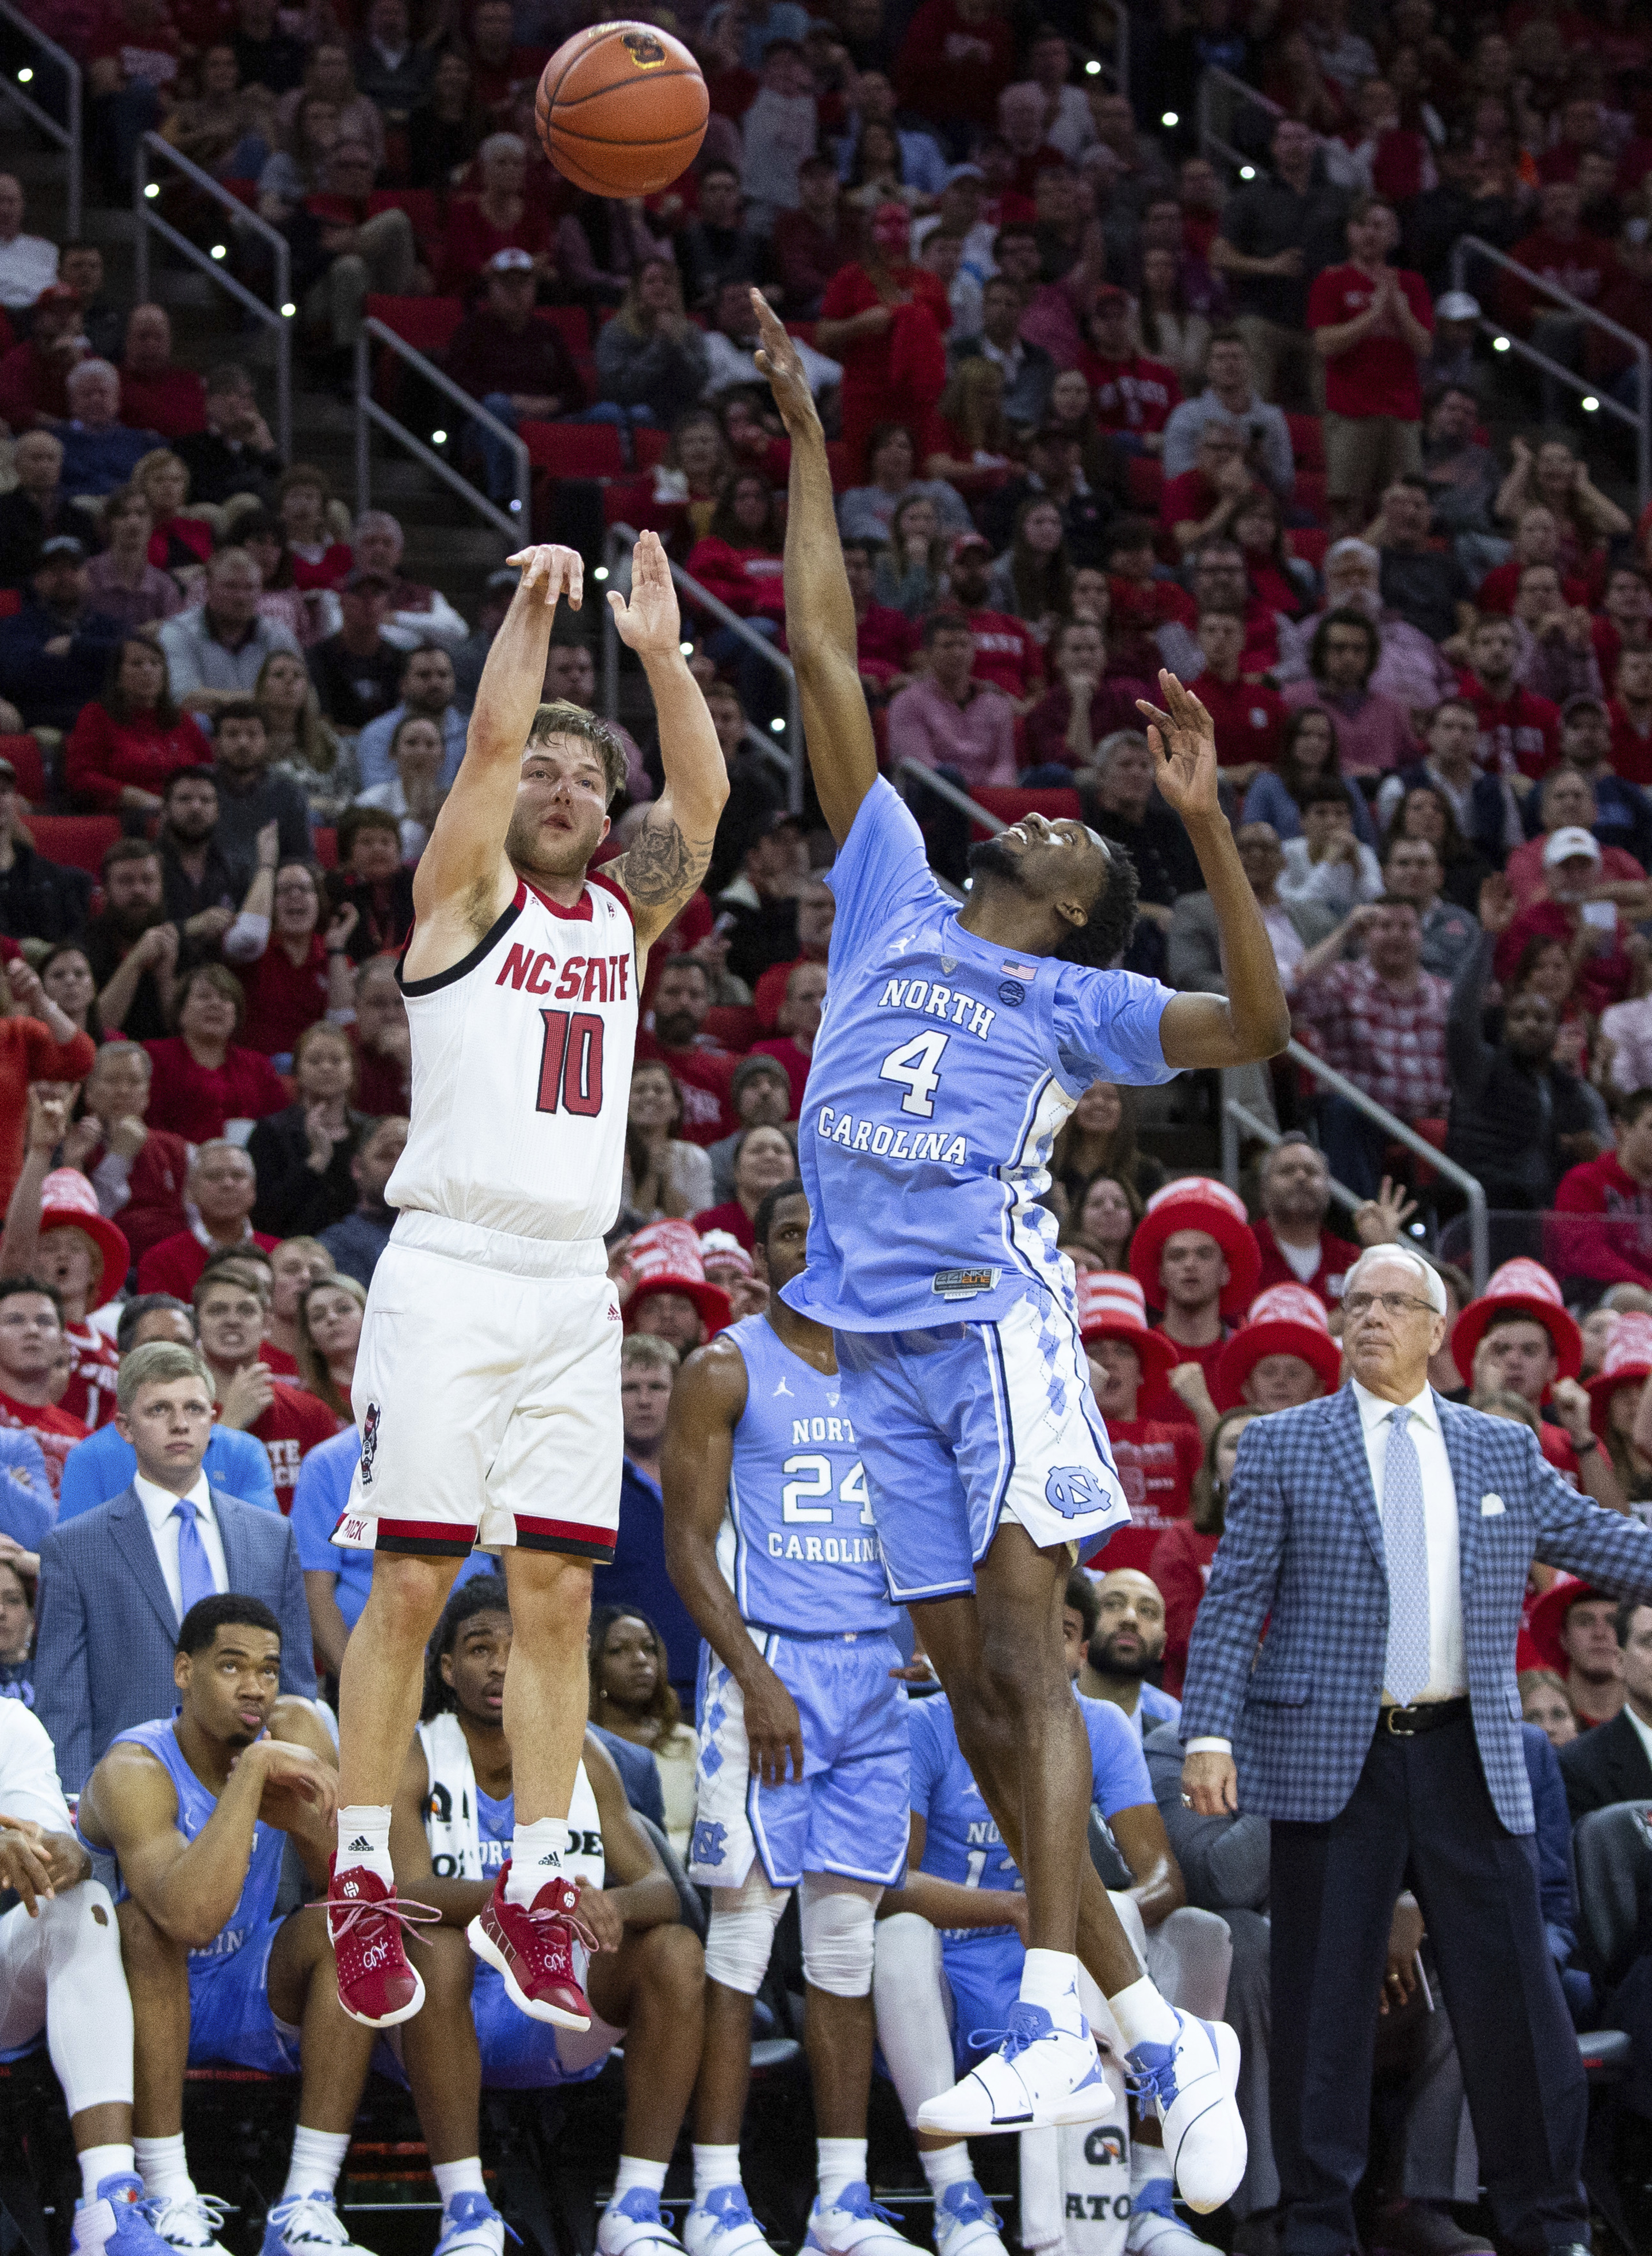 North Carolina State's Braxton Beverly (10) attempts a three-pointer over North Carolina's Brandon Robinson (4) during the first half of an NCAA college basketball game in Raleigh, N.C., Tuesday, Jan. 8, 2019. (AP Photo/Ben McKeown)